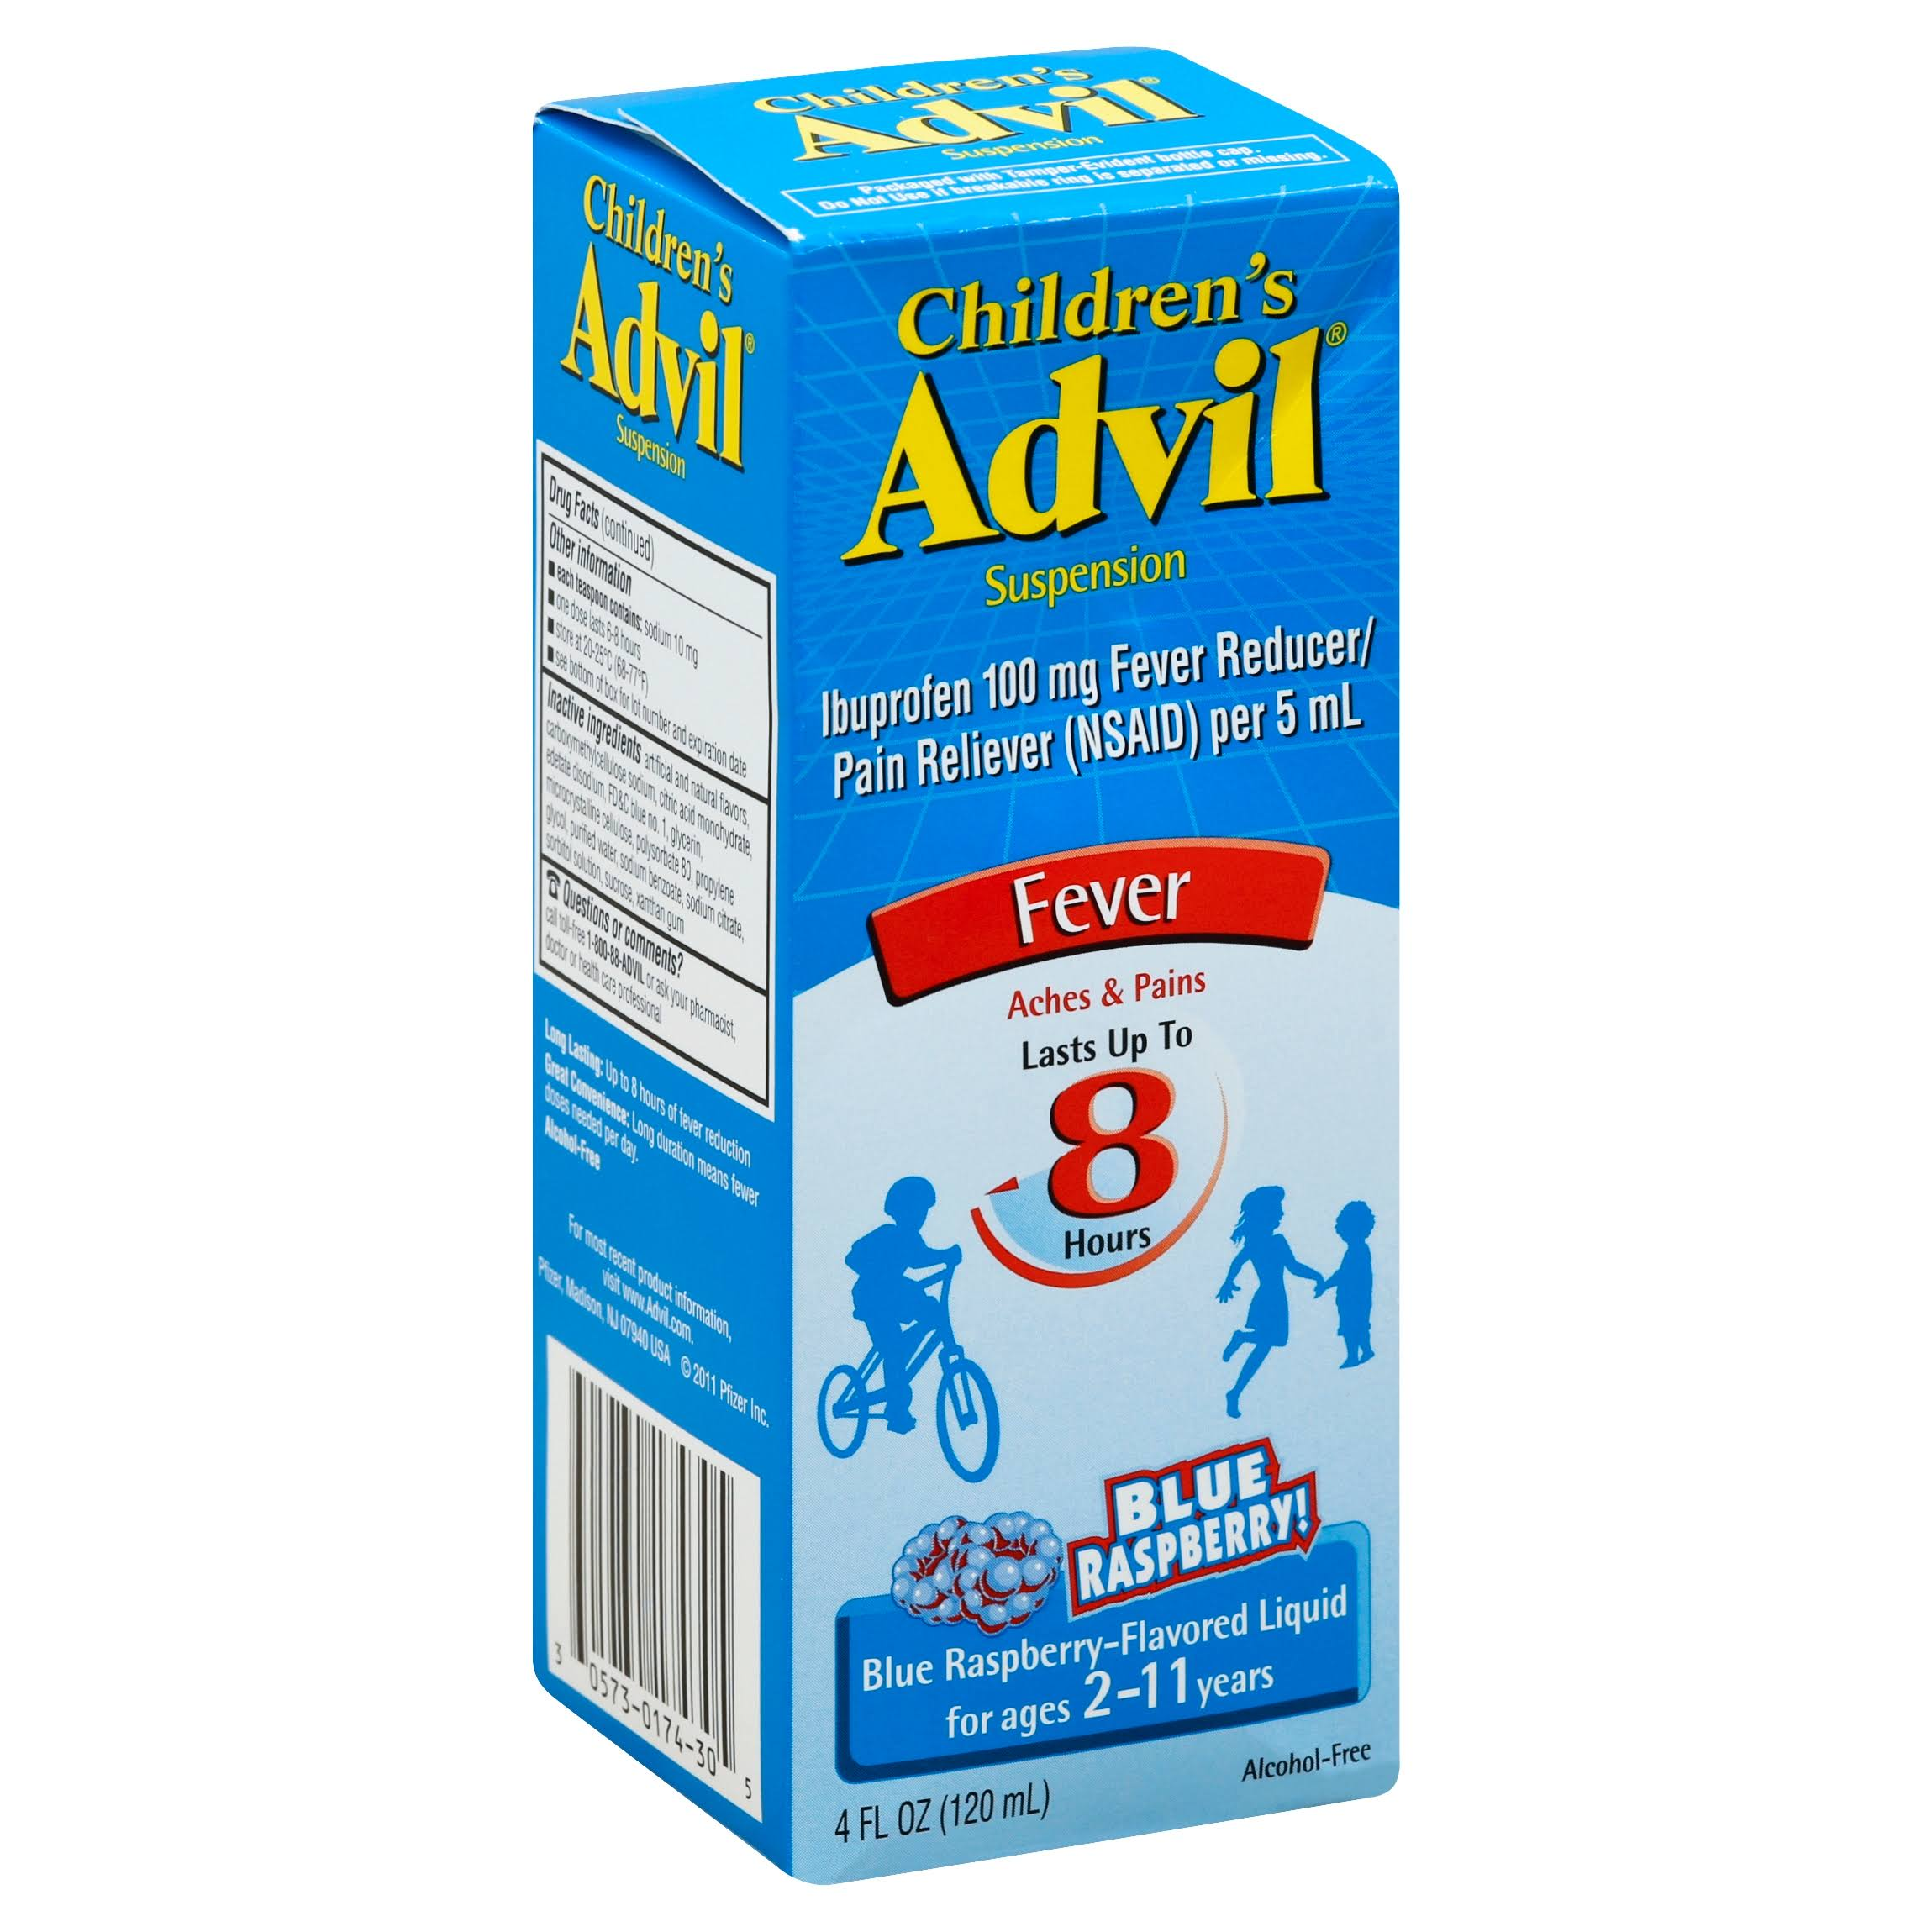 Advil Children's Suspension Fever Medicine - Blue Raspberry, 4oz